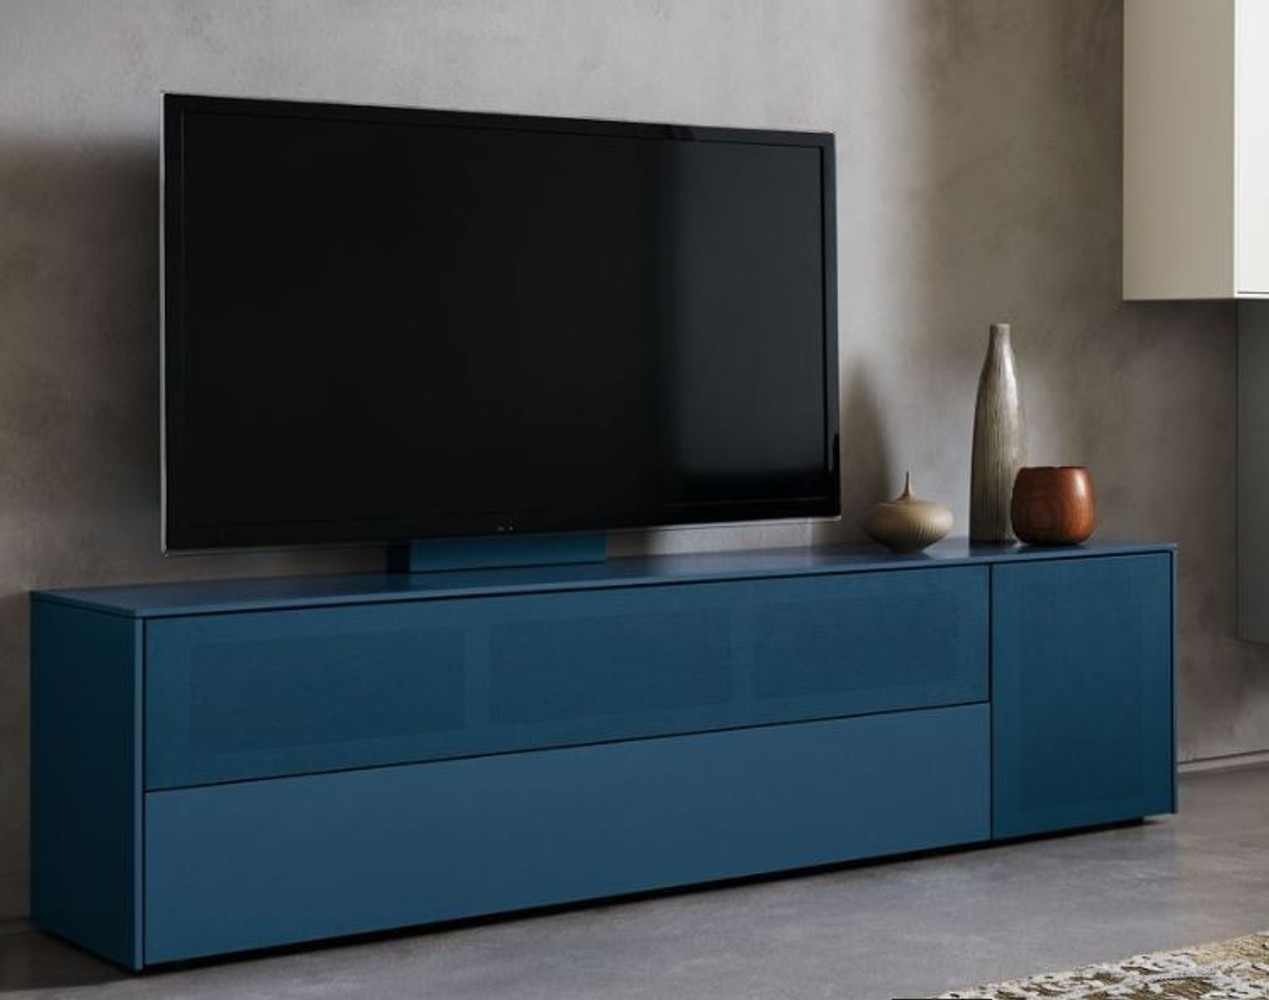 wk wohnen tv medienboard modell wk 419 intono soundbar. Black Bedroom Furniture Sets. Home Design Ideas